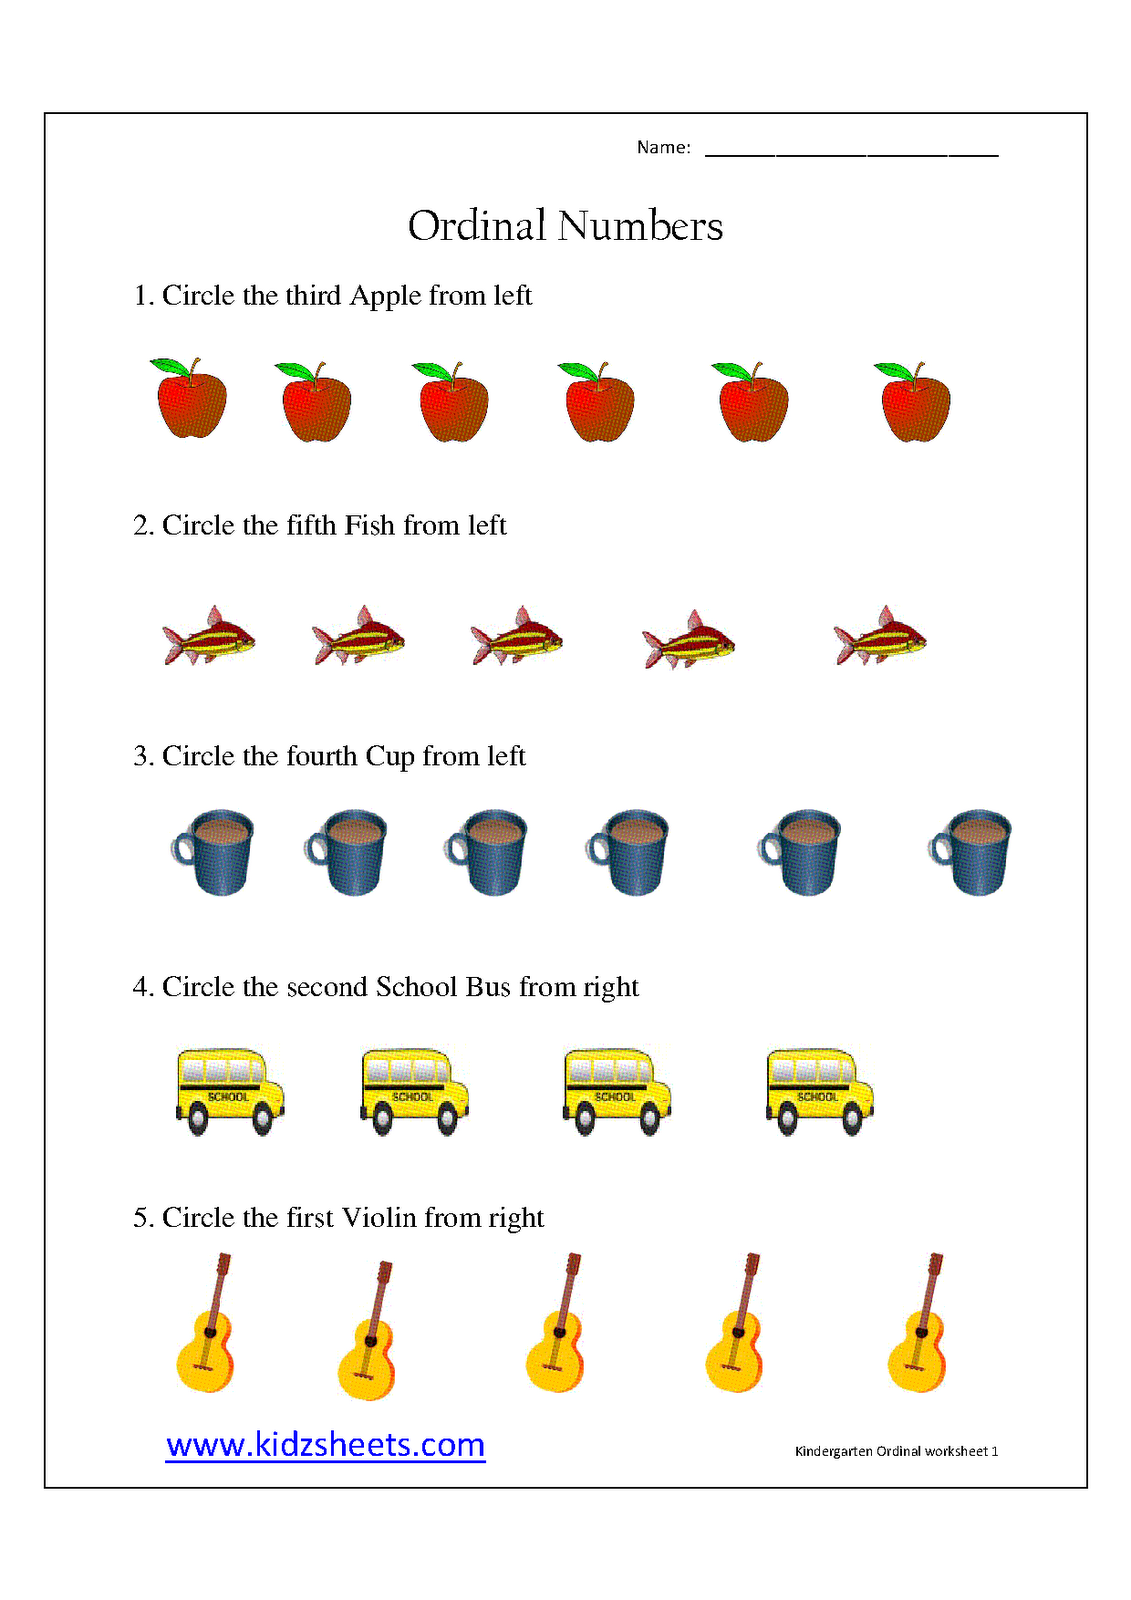 Ordinal Numbers Worksheet Kindergarten Free Worksheets ...